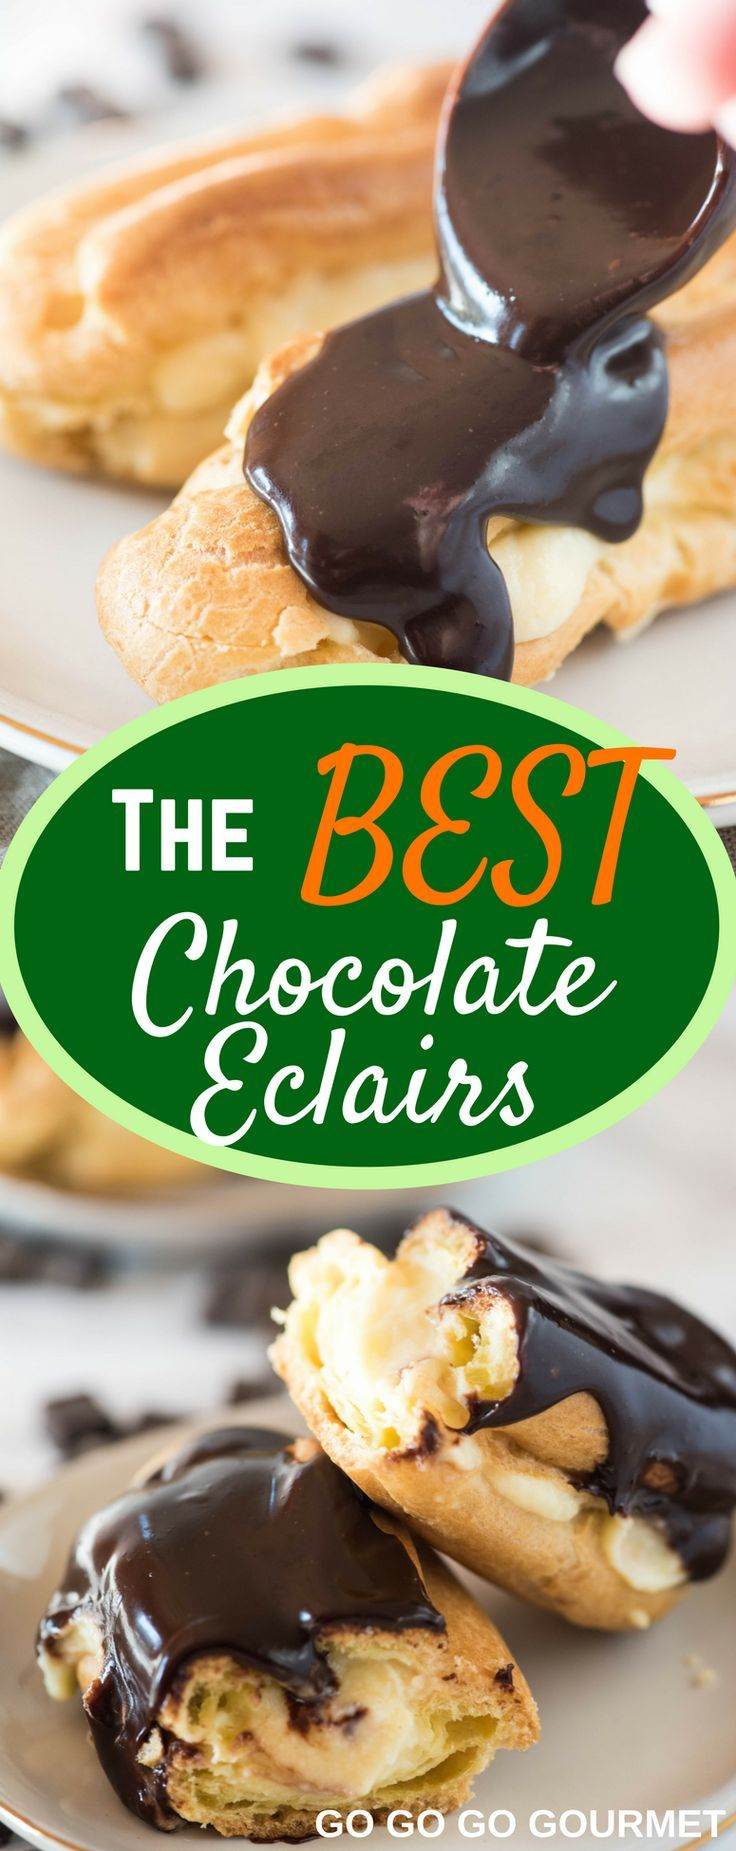 Forget the cake, pie and cupcakes, this easy Chocolate Eclair recipe will take you to French dessert heaven! #easychocolateeclair #frenchdesserts #chocolateeclairrecipe #easydessertrecipes #gogogogourmet